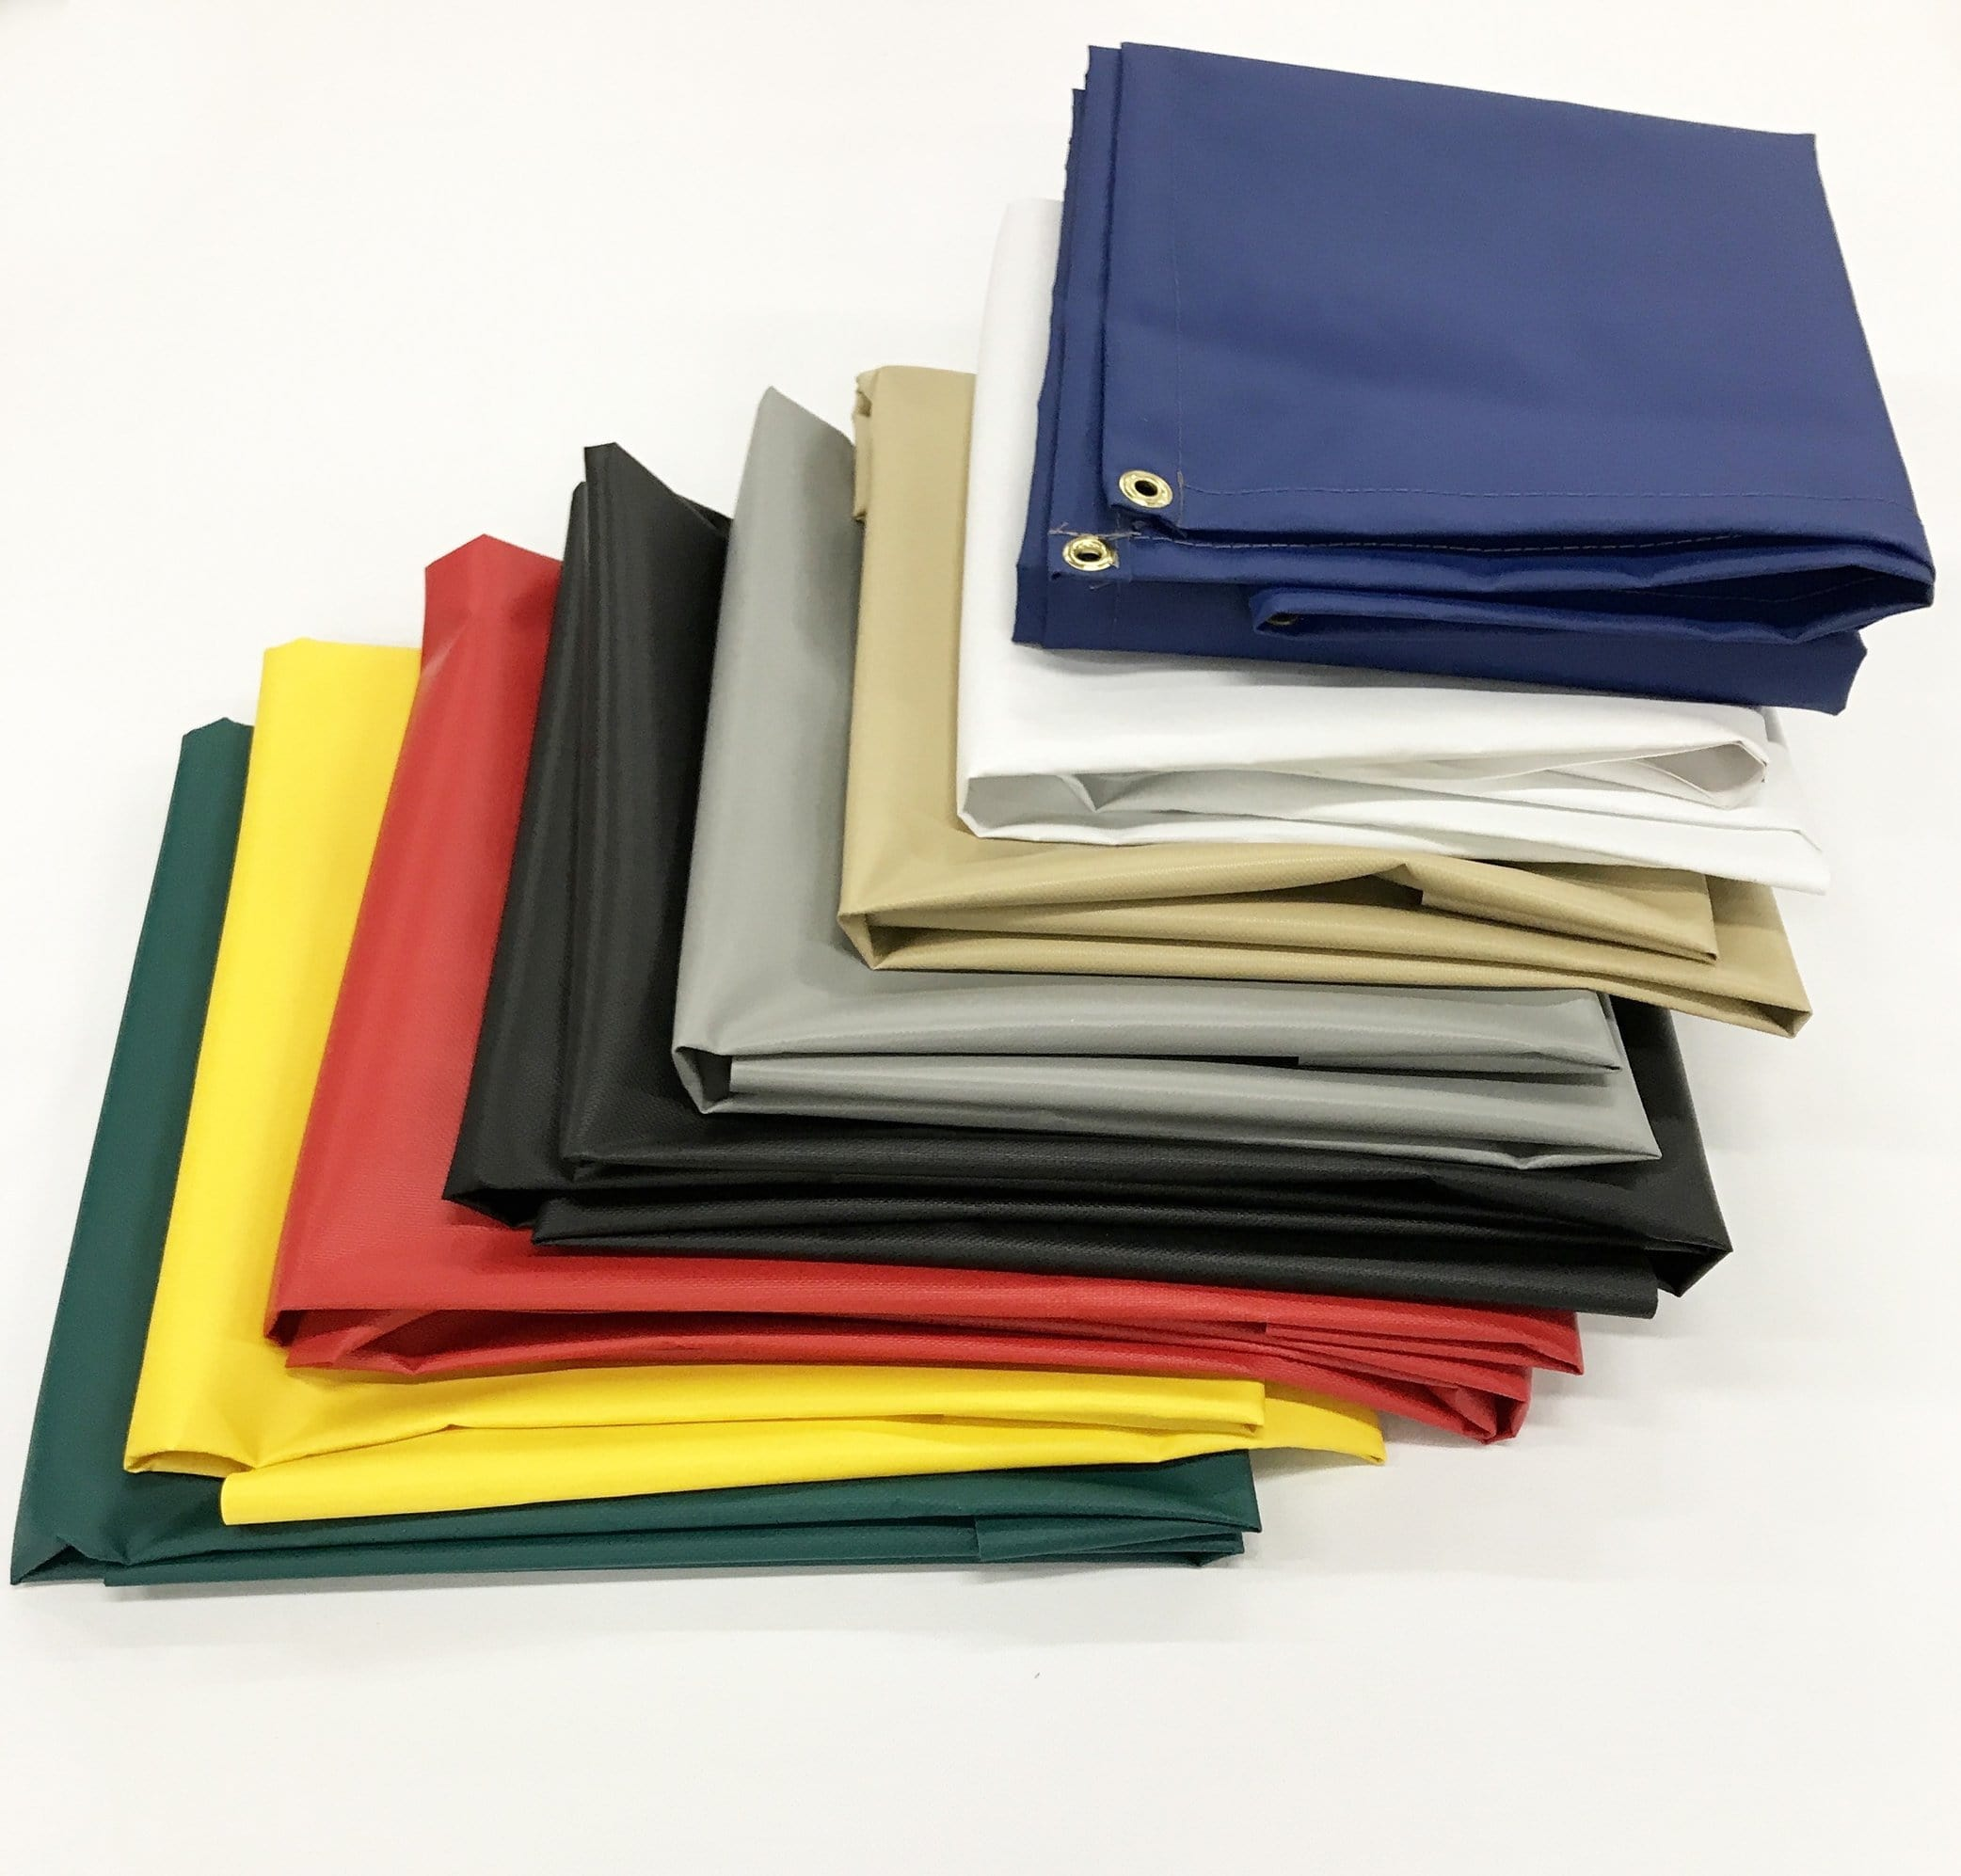 18 oz Vinyl Tarps in blue, black, white, yellow, red, green, & tan for heavy duty use